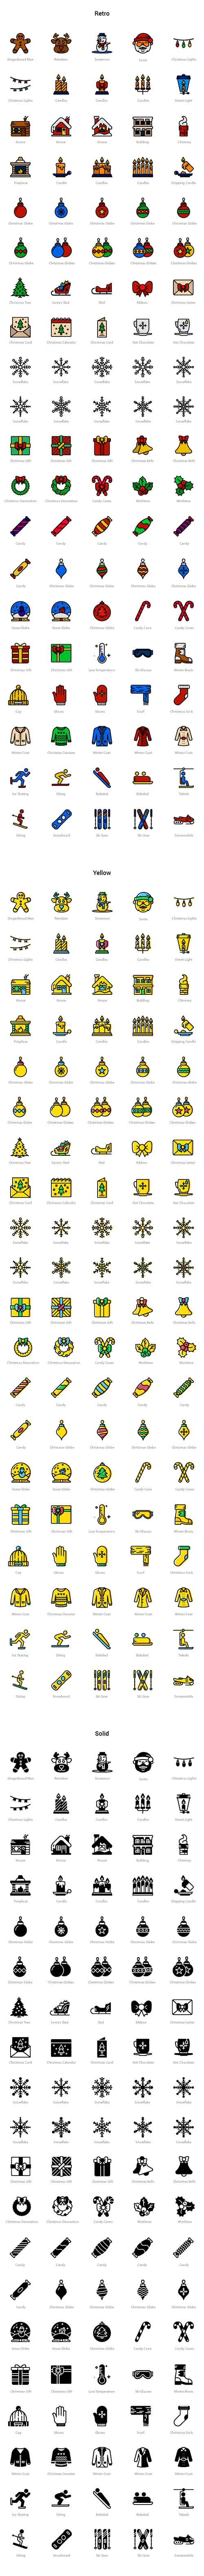 Ai, SKETCH Vector Icons - Winter 2016-2017